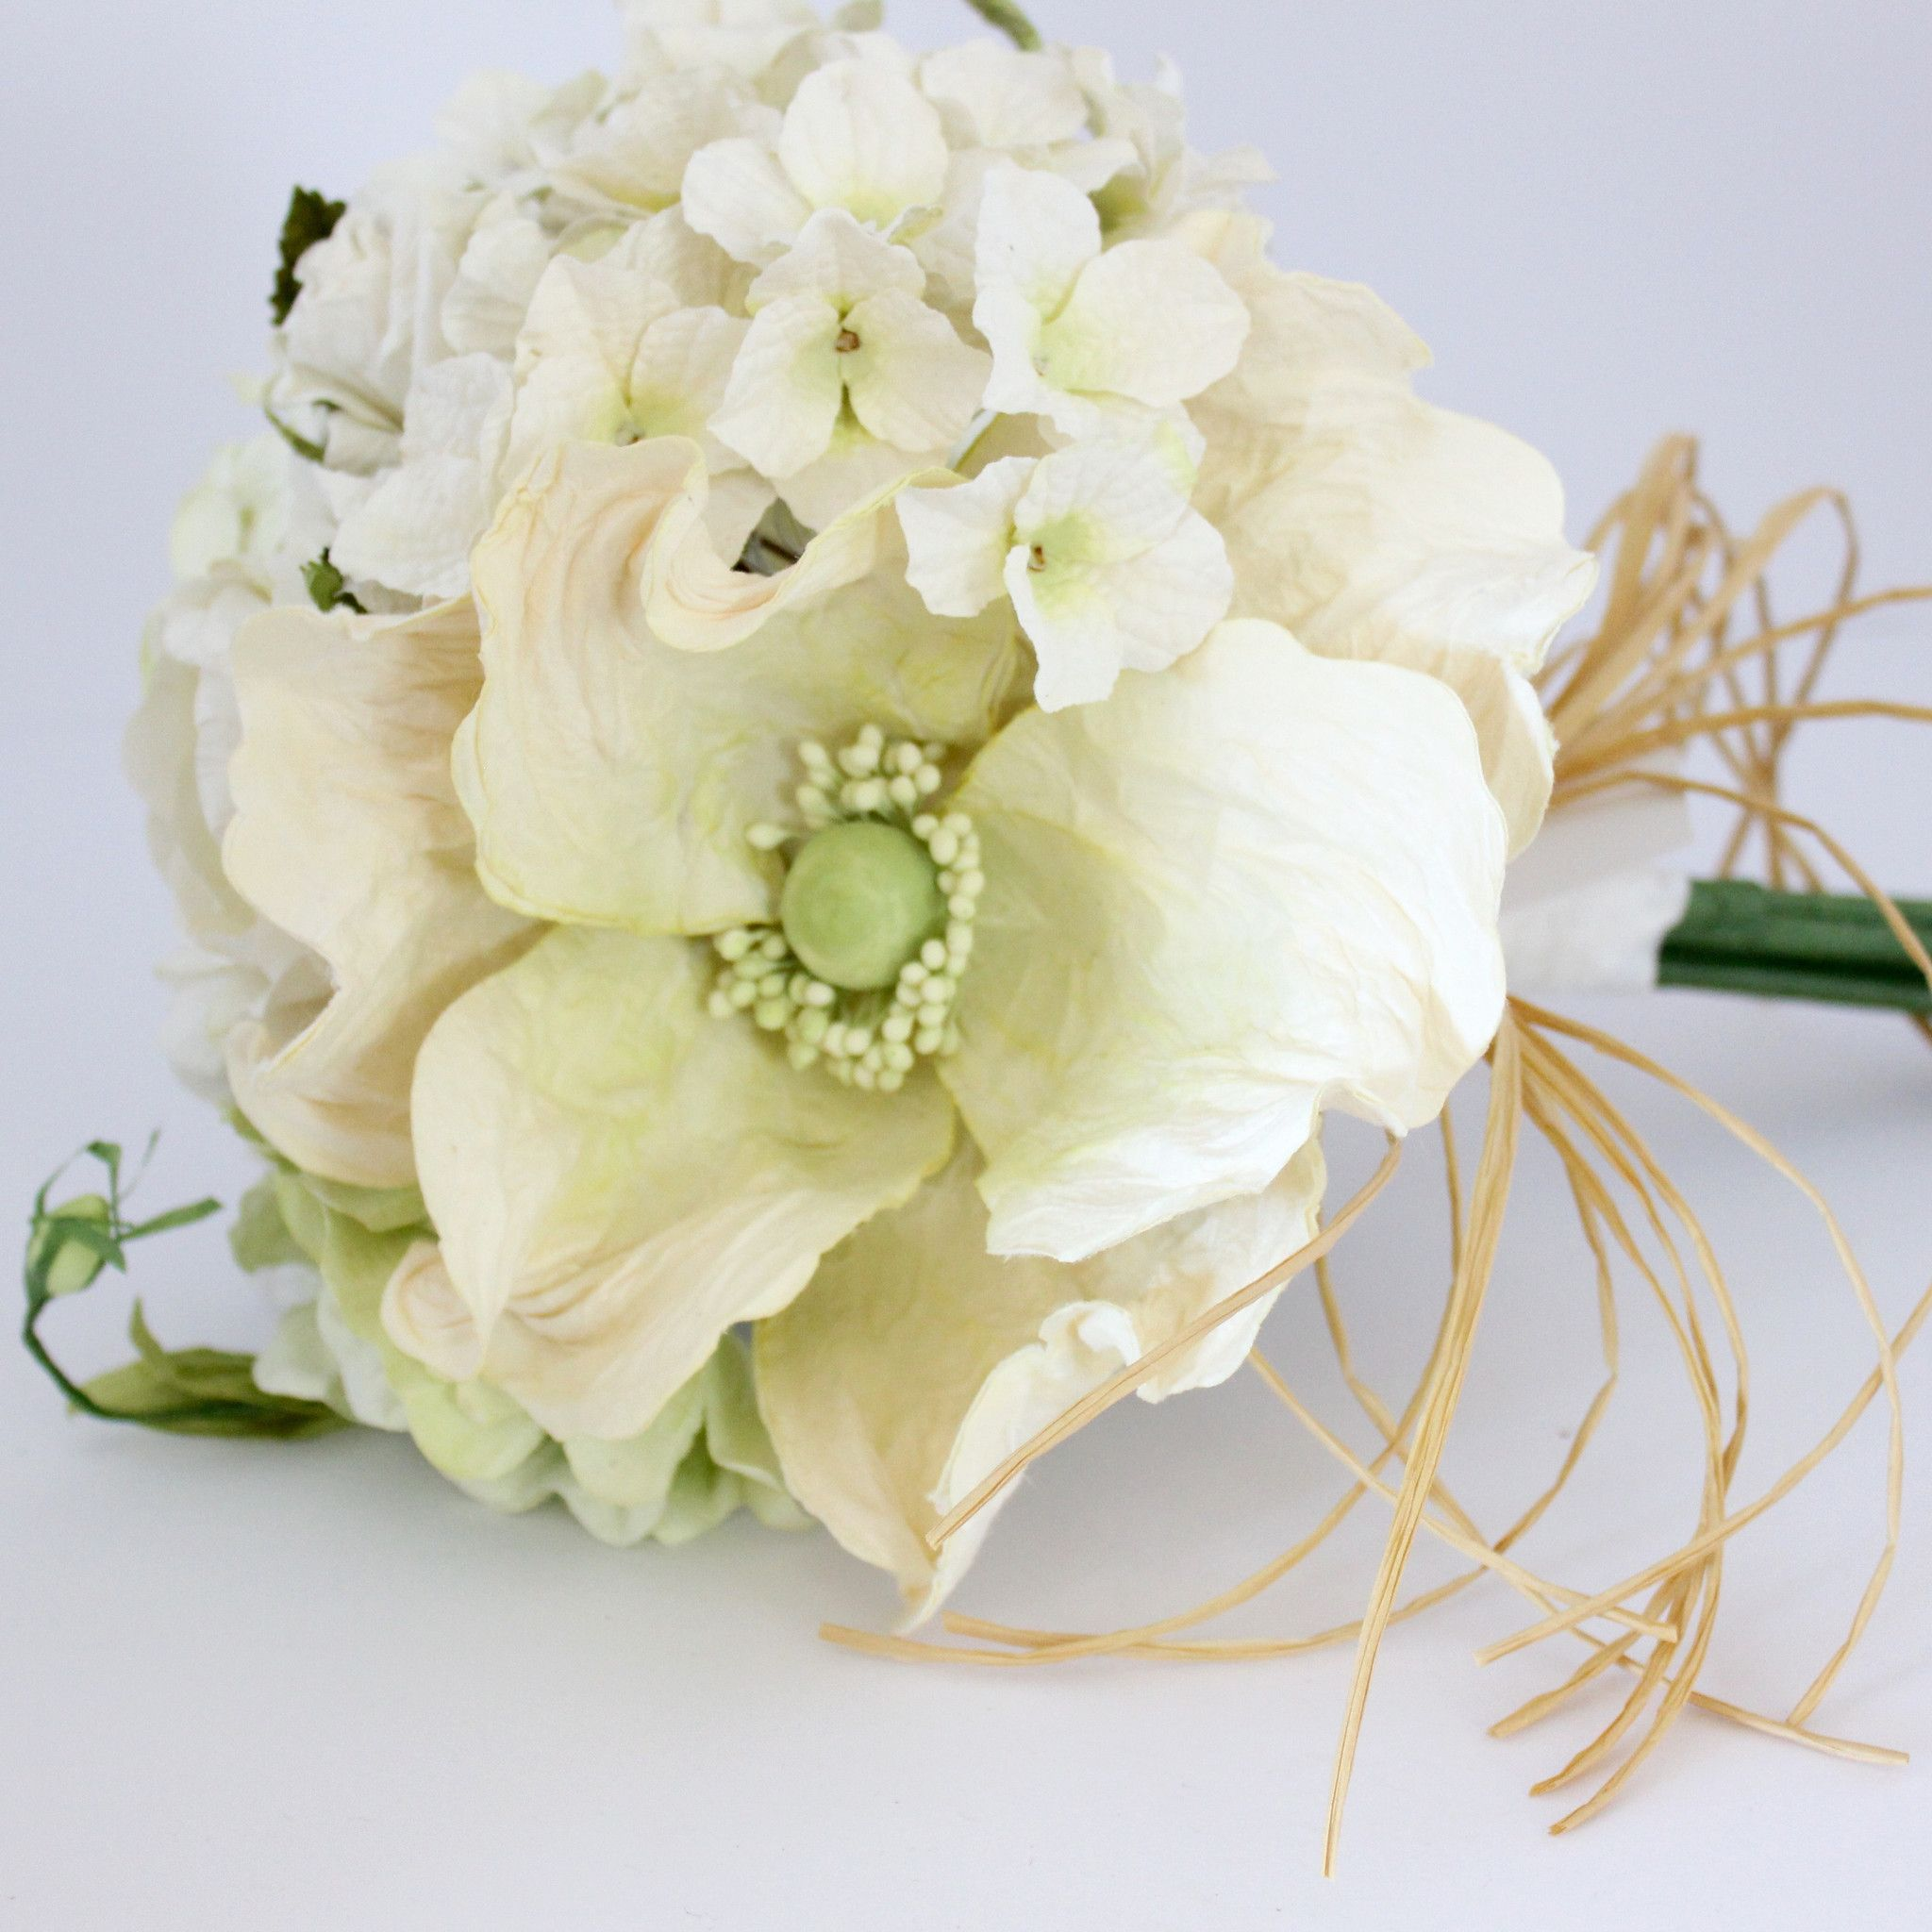 Mixed paper flower bouquet classic white and greens paper flowers mixed paper flower bouquet classic white and greens paper flowers australia mightylinksfo